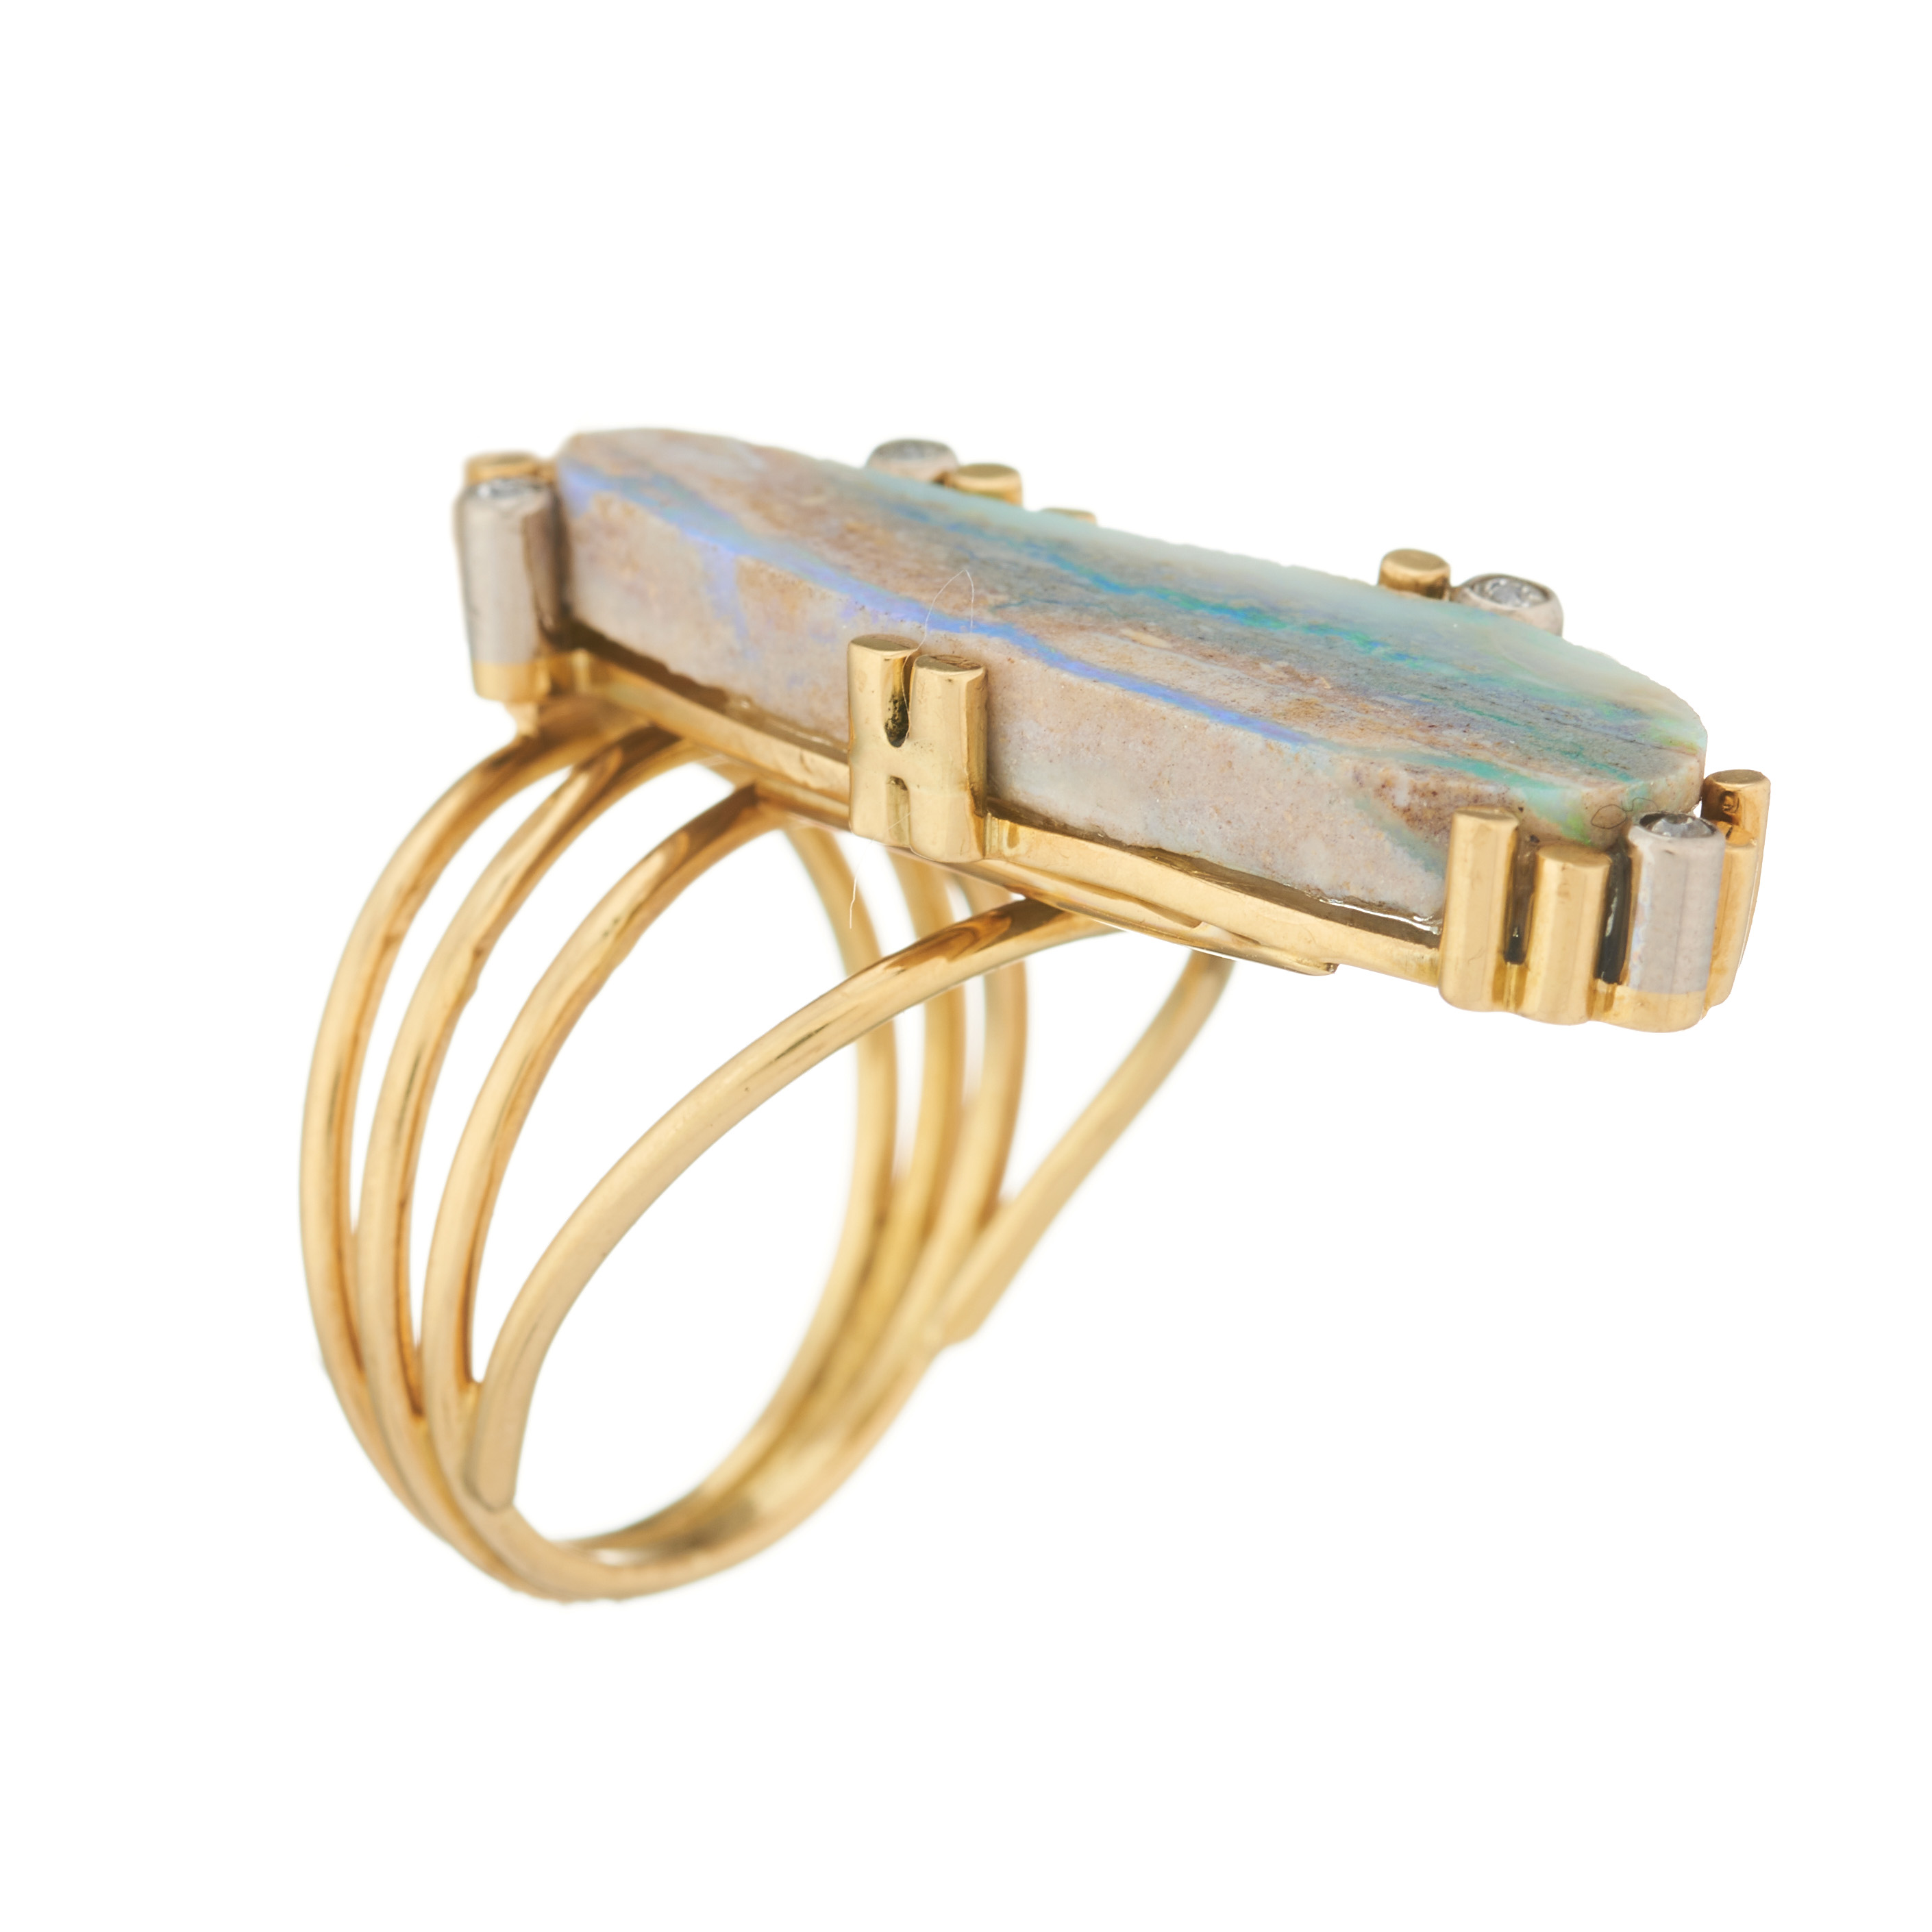 A mid 20th century 18ct gold boulder opal and diamond dress ring - Image 2 of 2